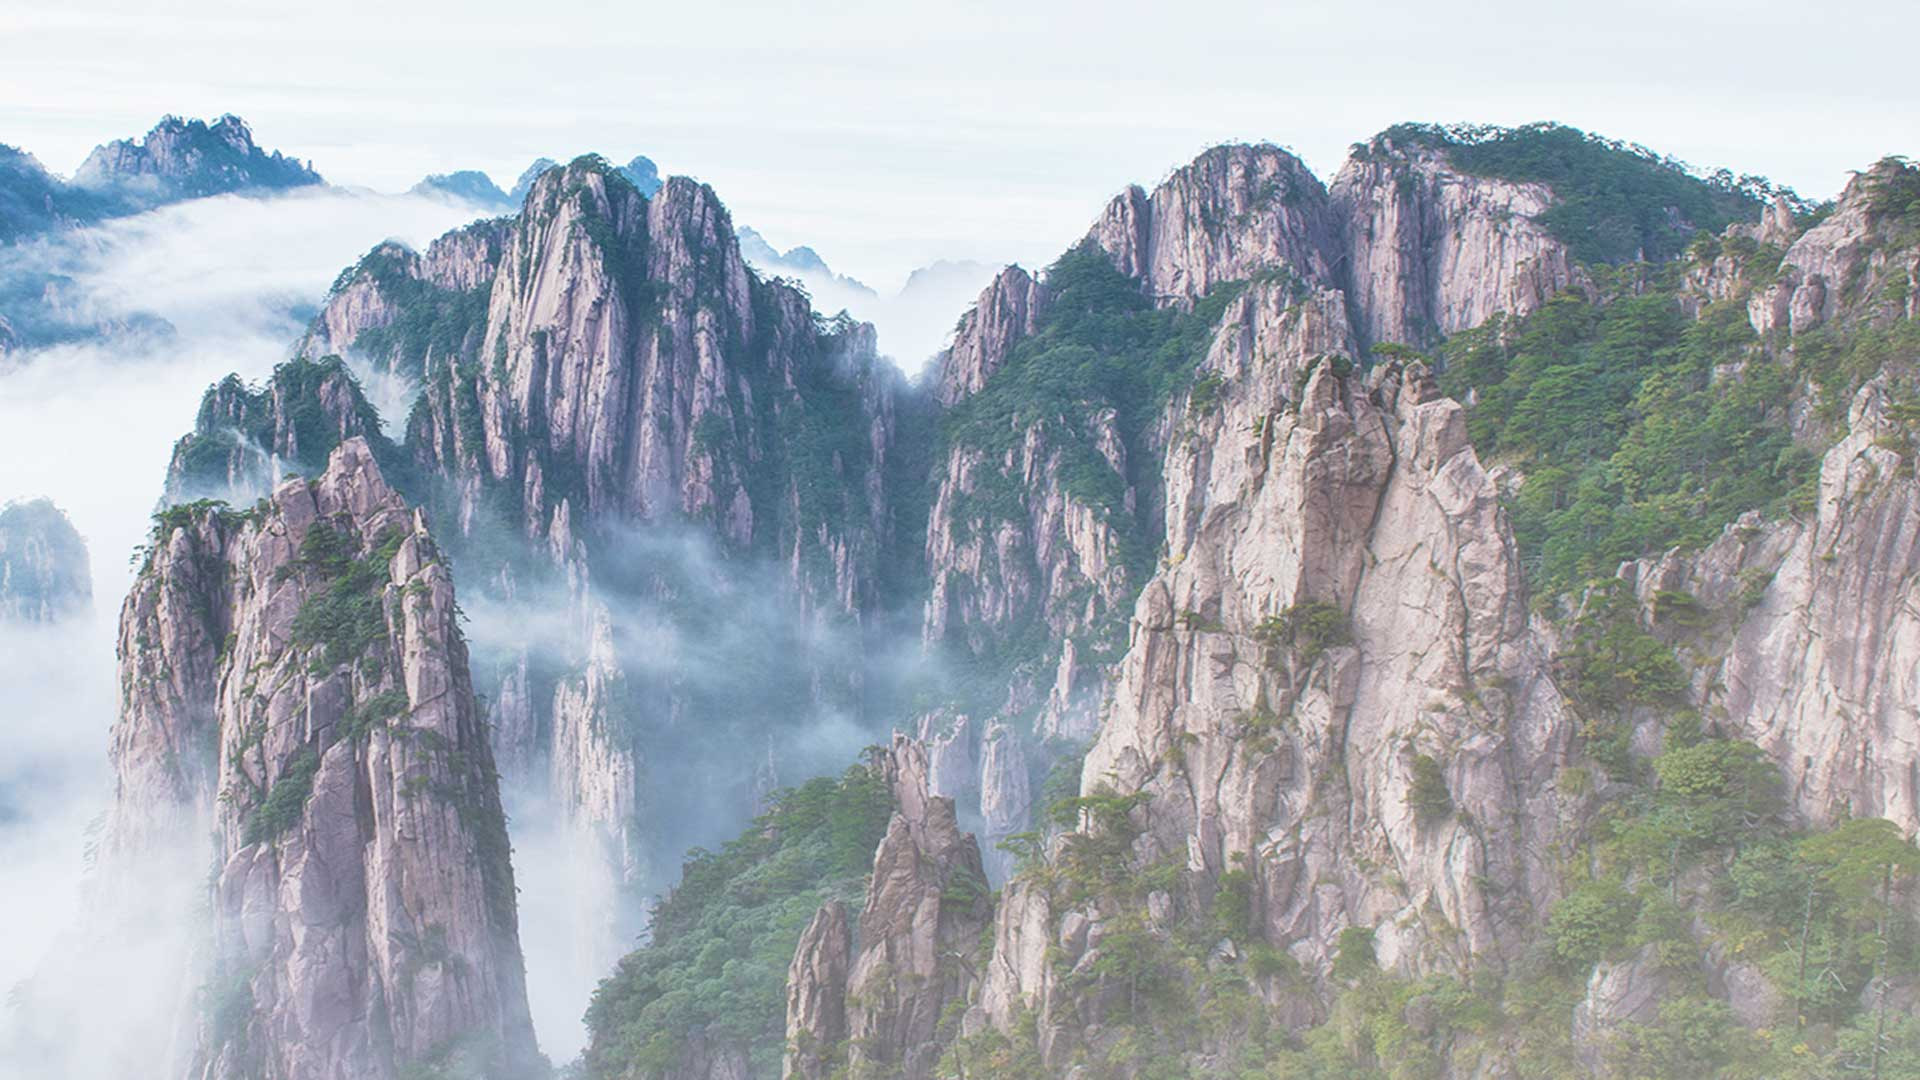 Place of power for meditation: The Blumenberg in the southern Chinese province of Anhui.